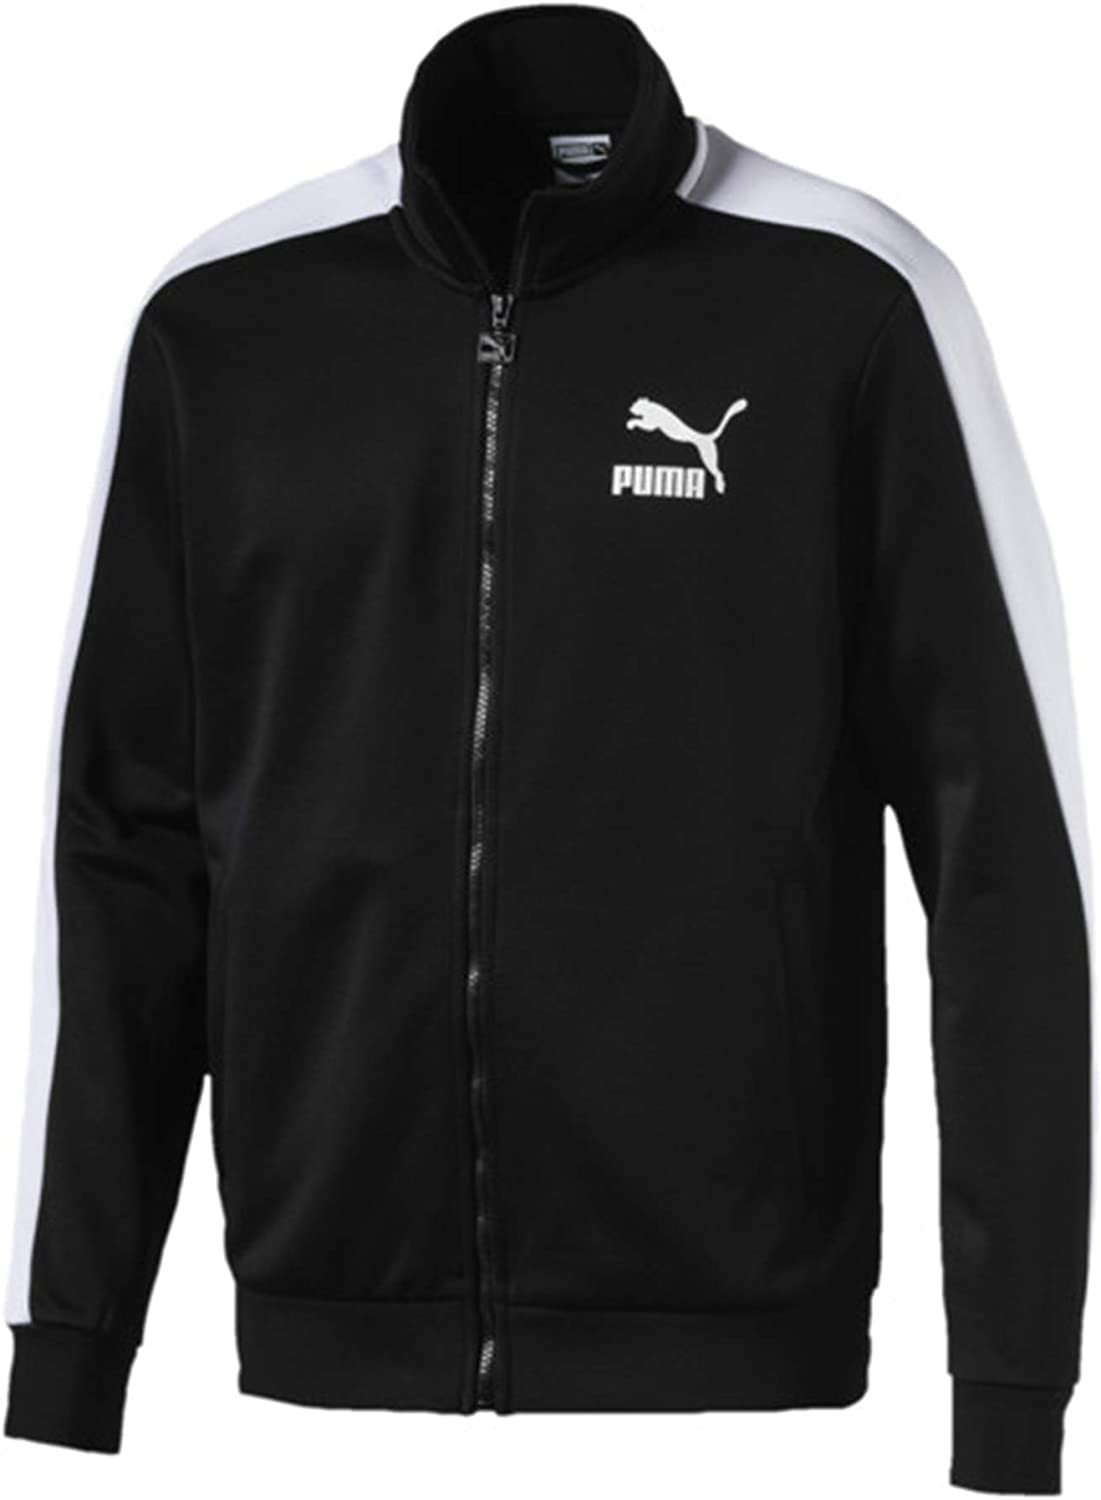 Excellence PUMA Men's Archive Track T7 Super popular specialty store Jacket